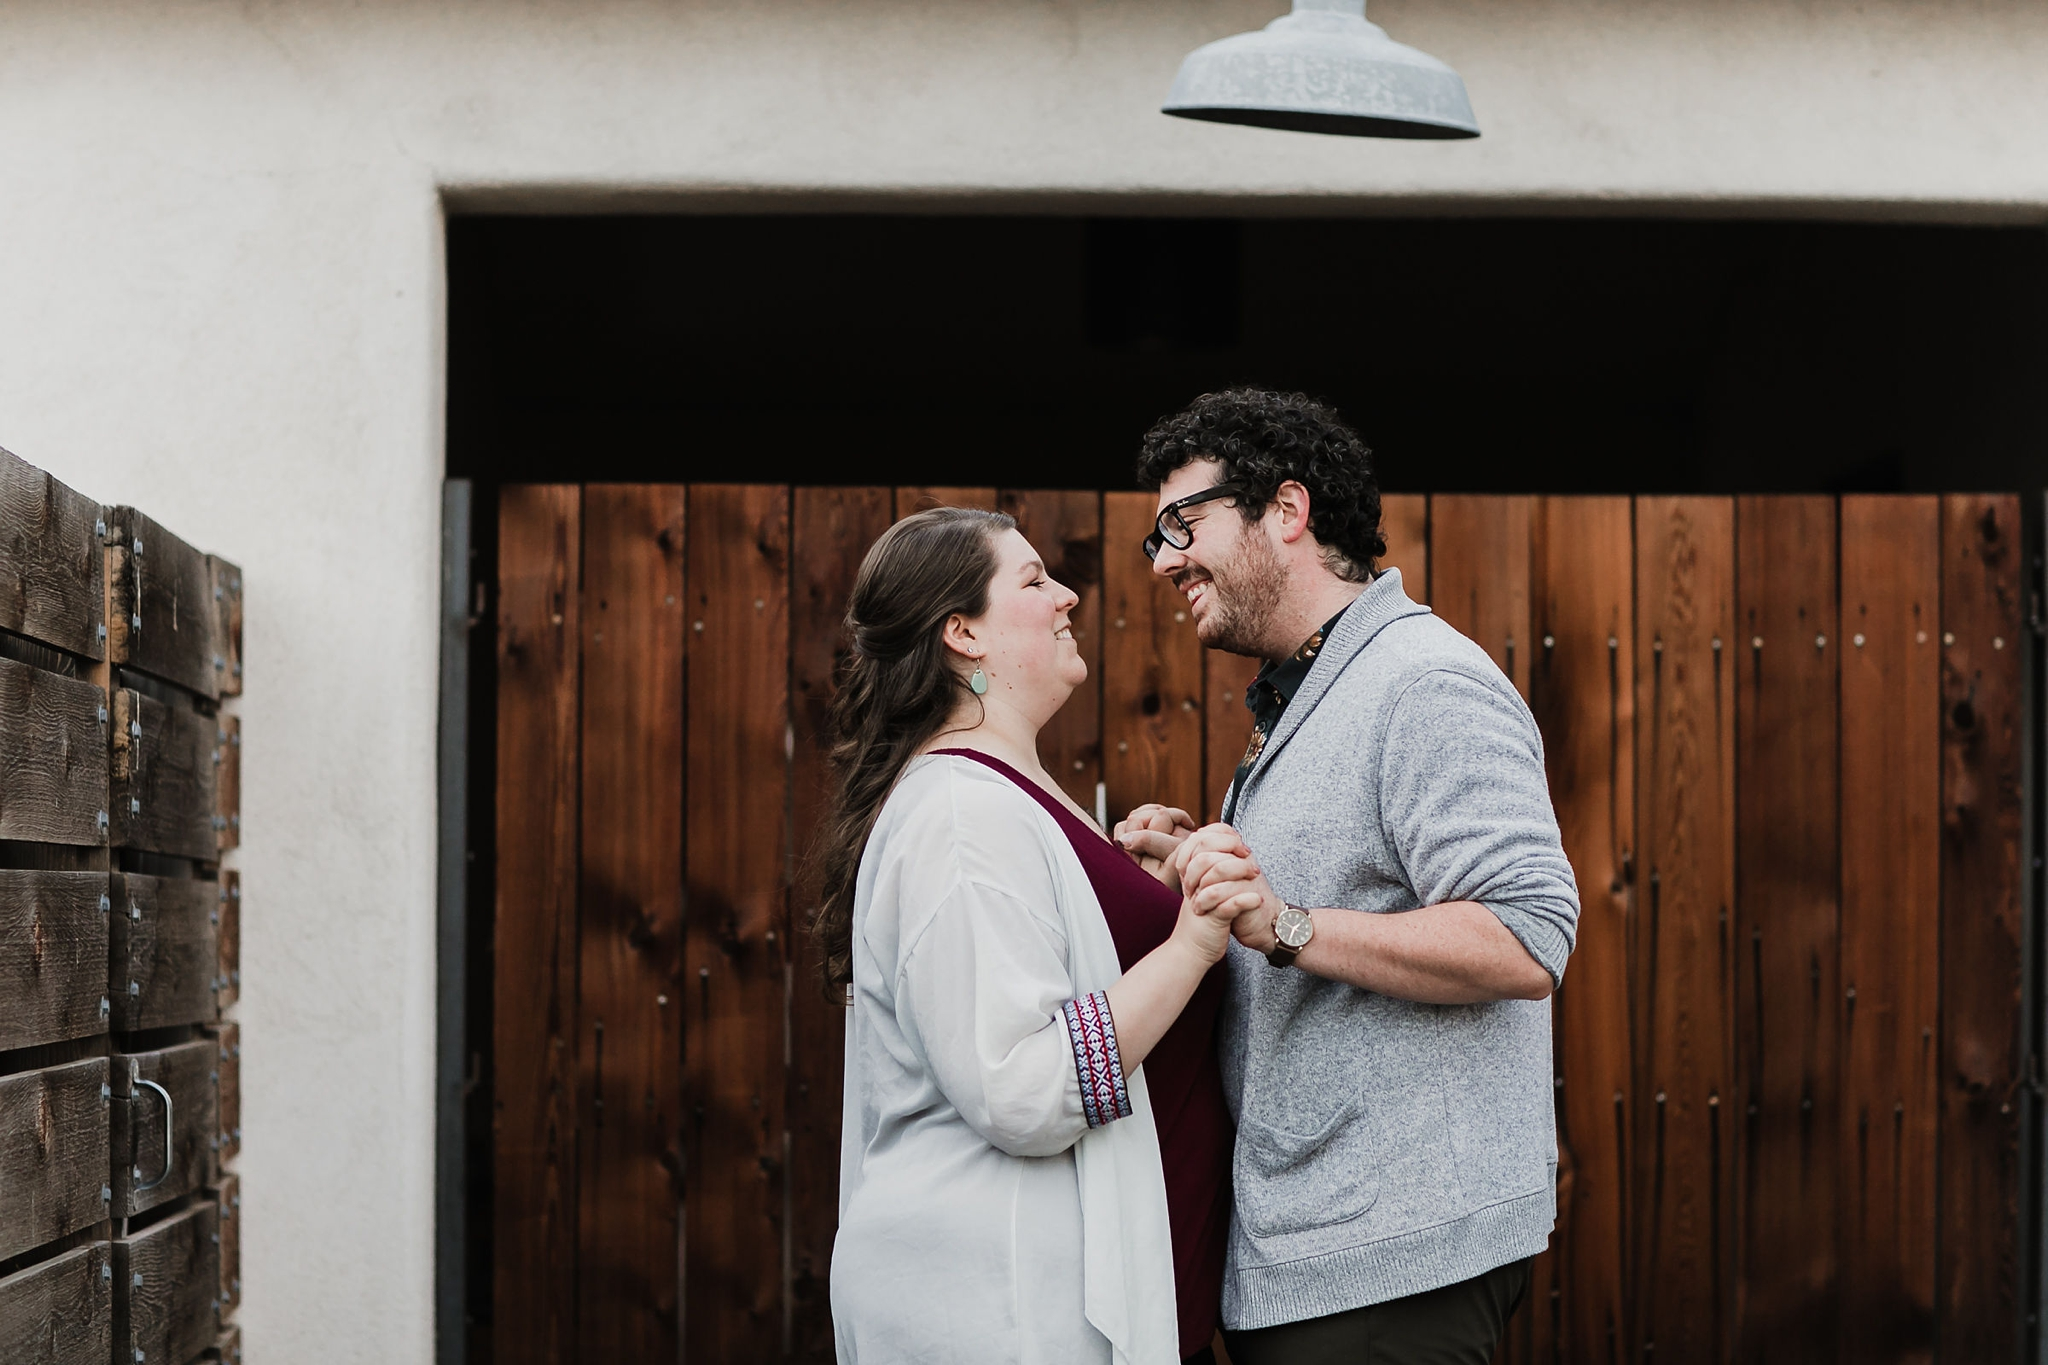 Alicia+lucia+photography+-+albuquerque+wedding+photographer+-+santa+fe+wedding+photography+-+new+mexico+wedding+photographer+-+new+mexico+engagement+-+los+poblanos+engagement+-+spring+engagement_0002.jpg